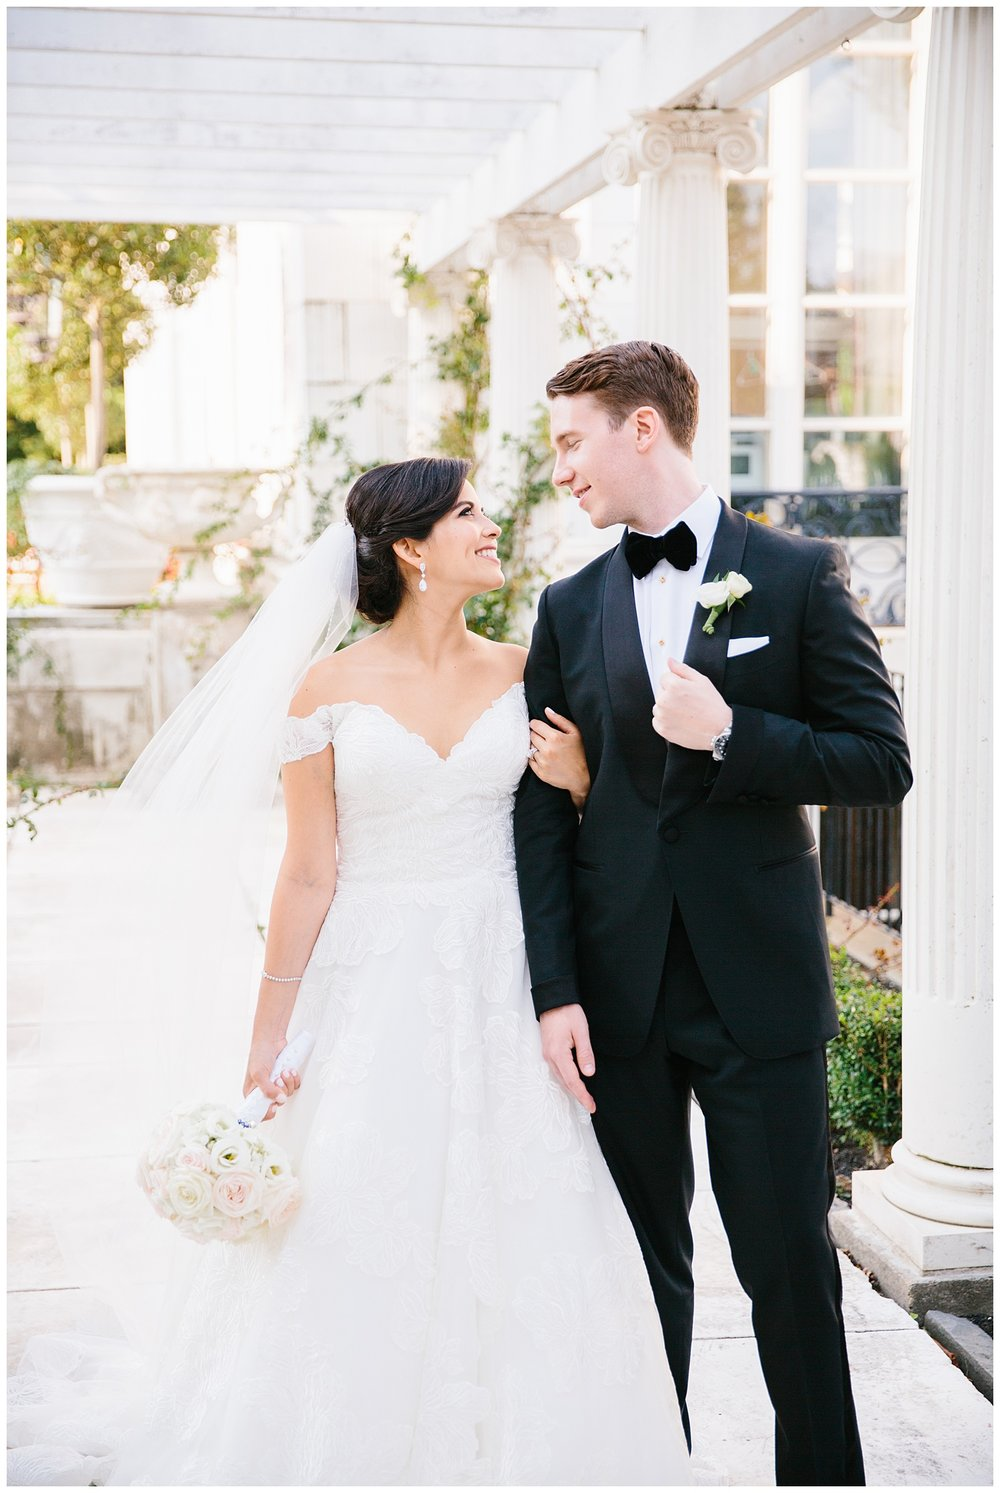 Stephen_Nathalie_Rosecliff_Mansion_Wedding_011.jpeg